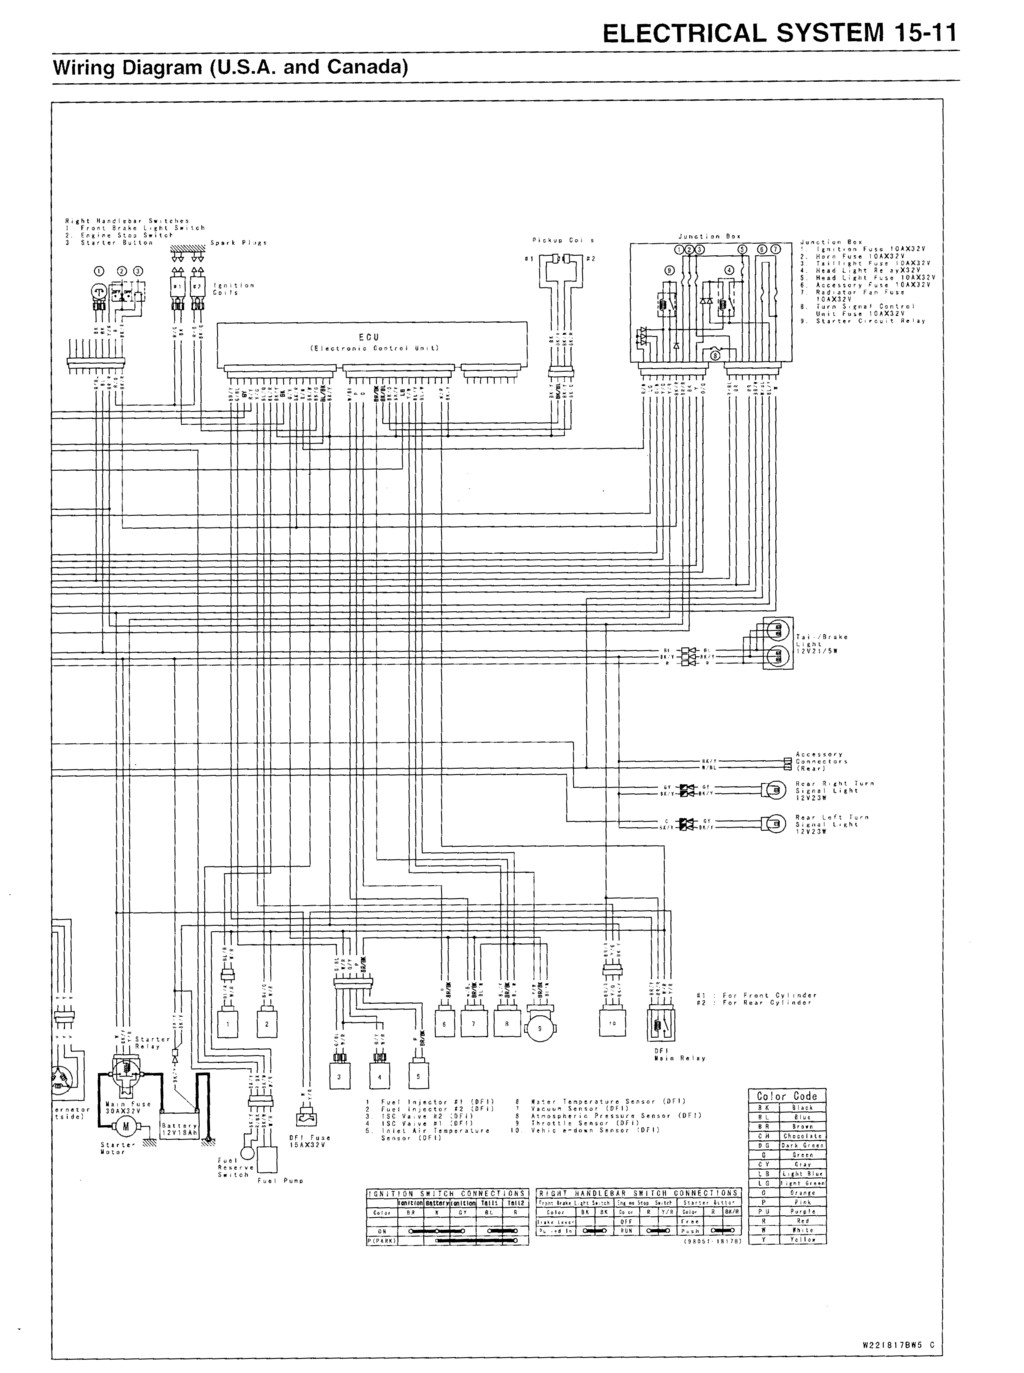 nomad_wiring_diagram_carbed_p2 vulcan wiring diagrams gadget's fixit page Kawasaki Vulcan 1500 Wiring Diagram at bakdesigns.co